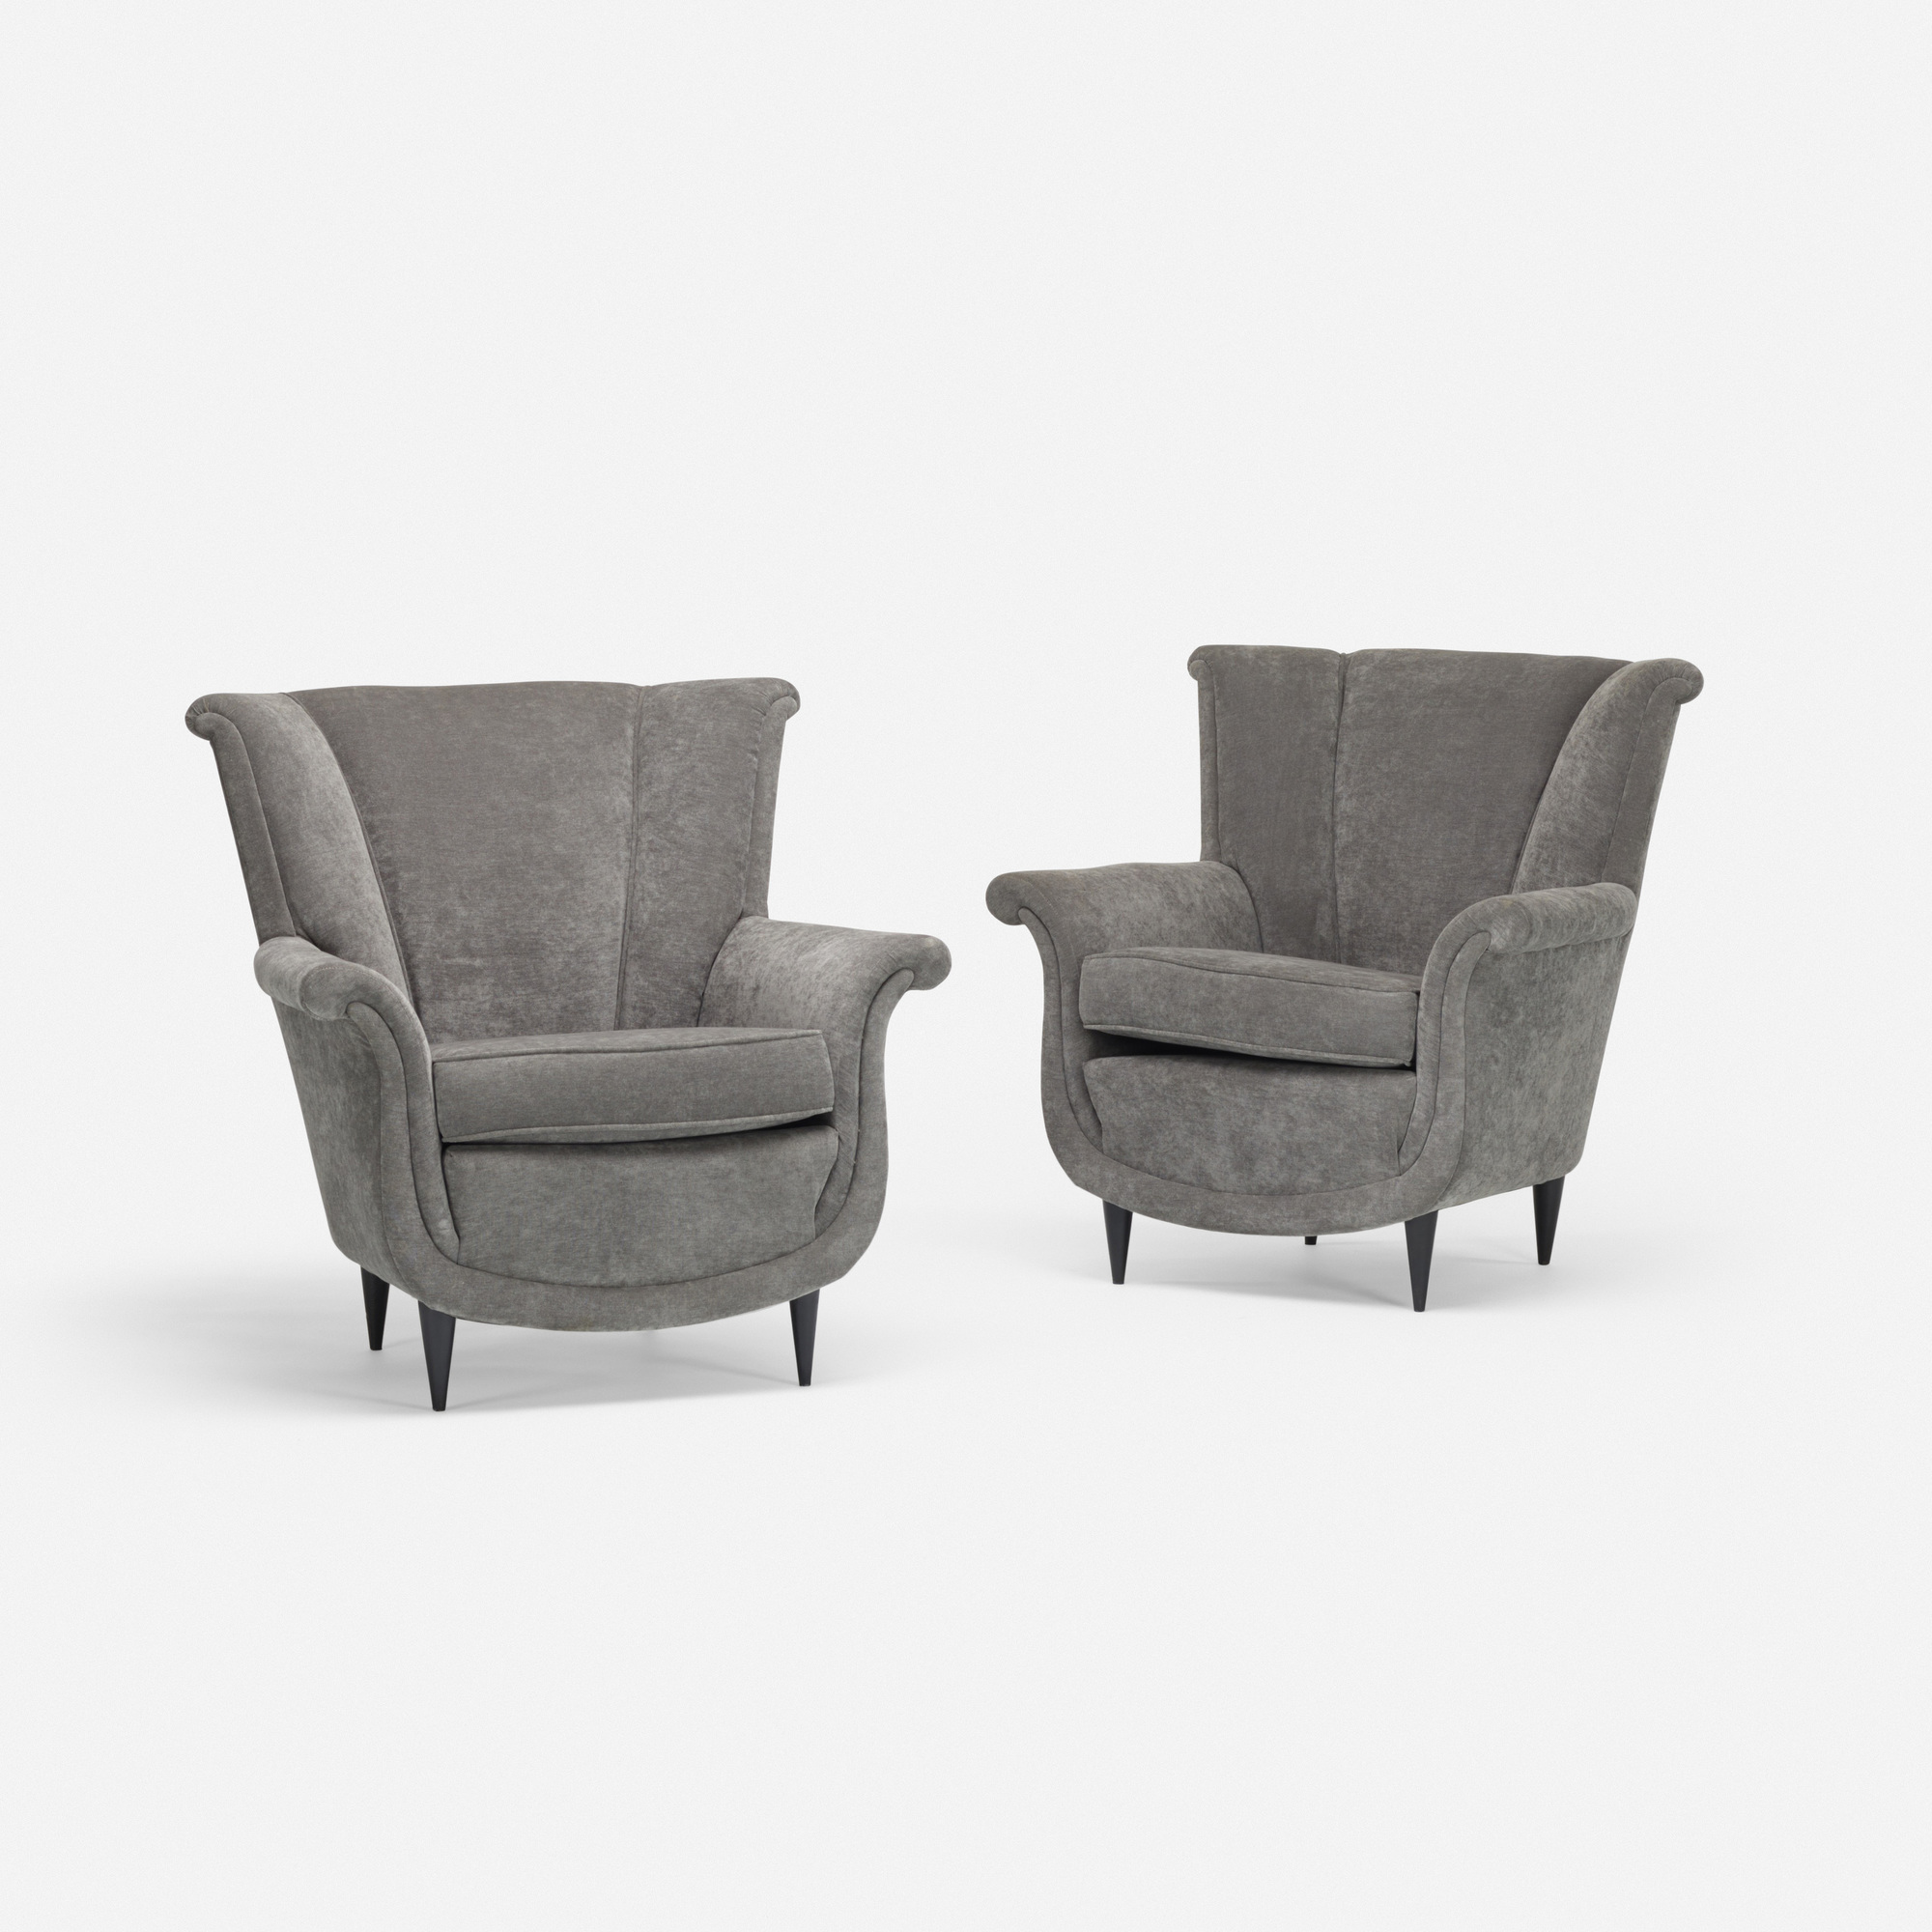 137: Italian / lounge chairs, pair (2 of 2)